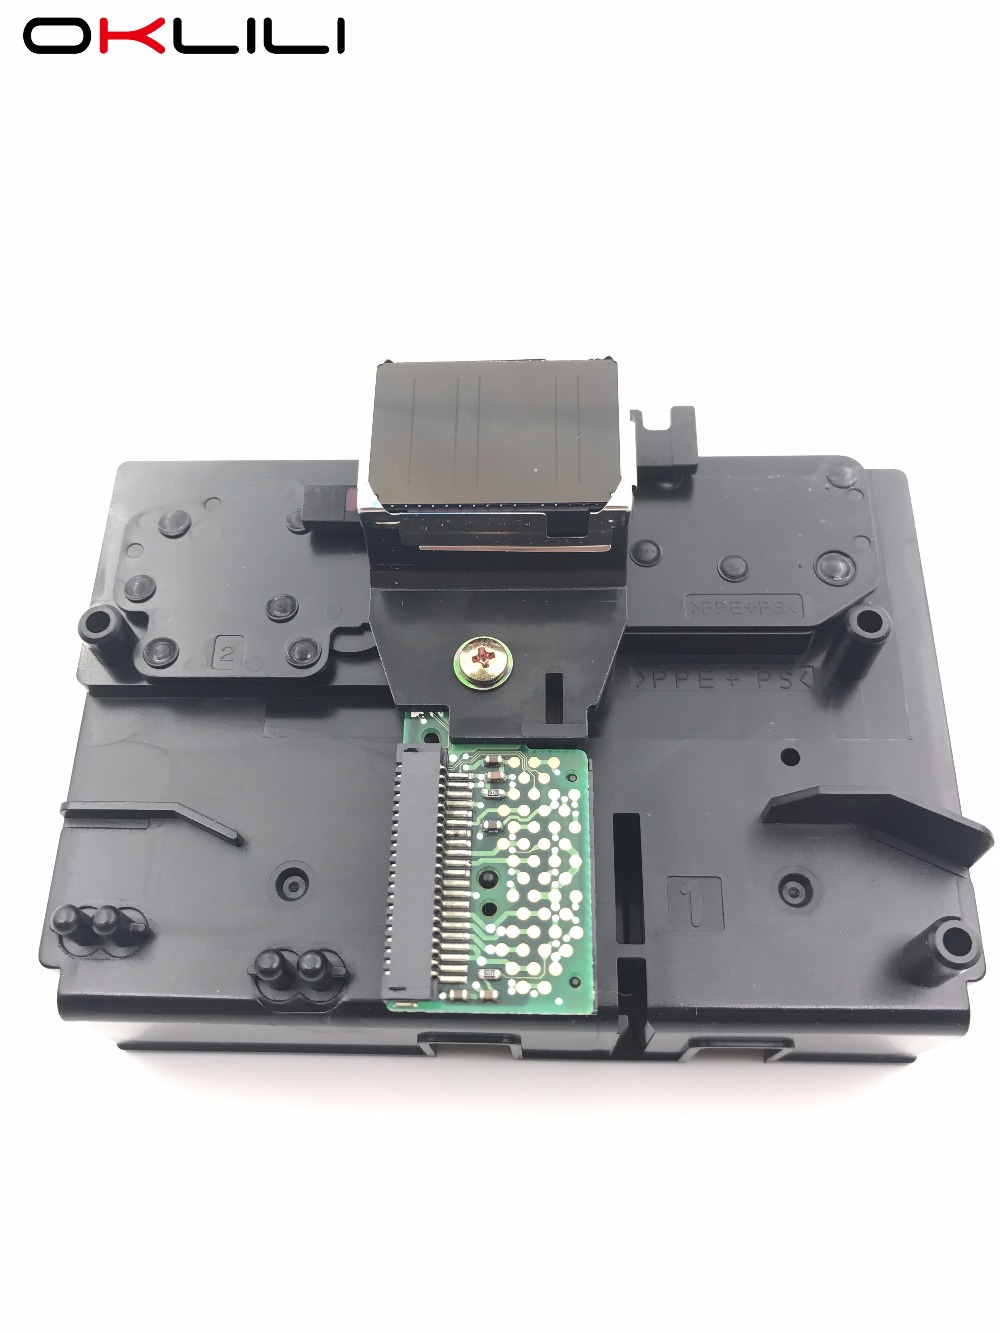 F072000 Printhead Printer Head Print Head for Epson Stylus Color 900 DX3 900G 900N 980 980N for Roland DX3 FJ500 FJ600 f190010 printhead printer print head for epson tx600 tx610 tx620 wf545 wf645 wf600 wf610 wf620 wf630 wf635 wf645 wf840 wf845